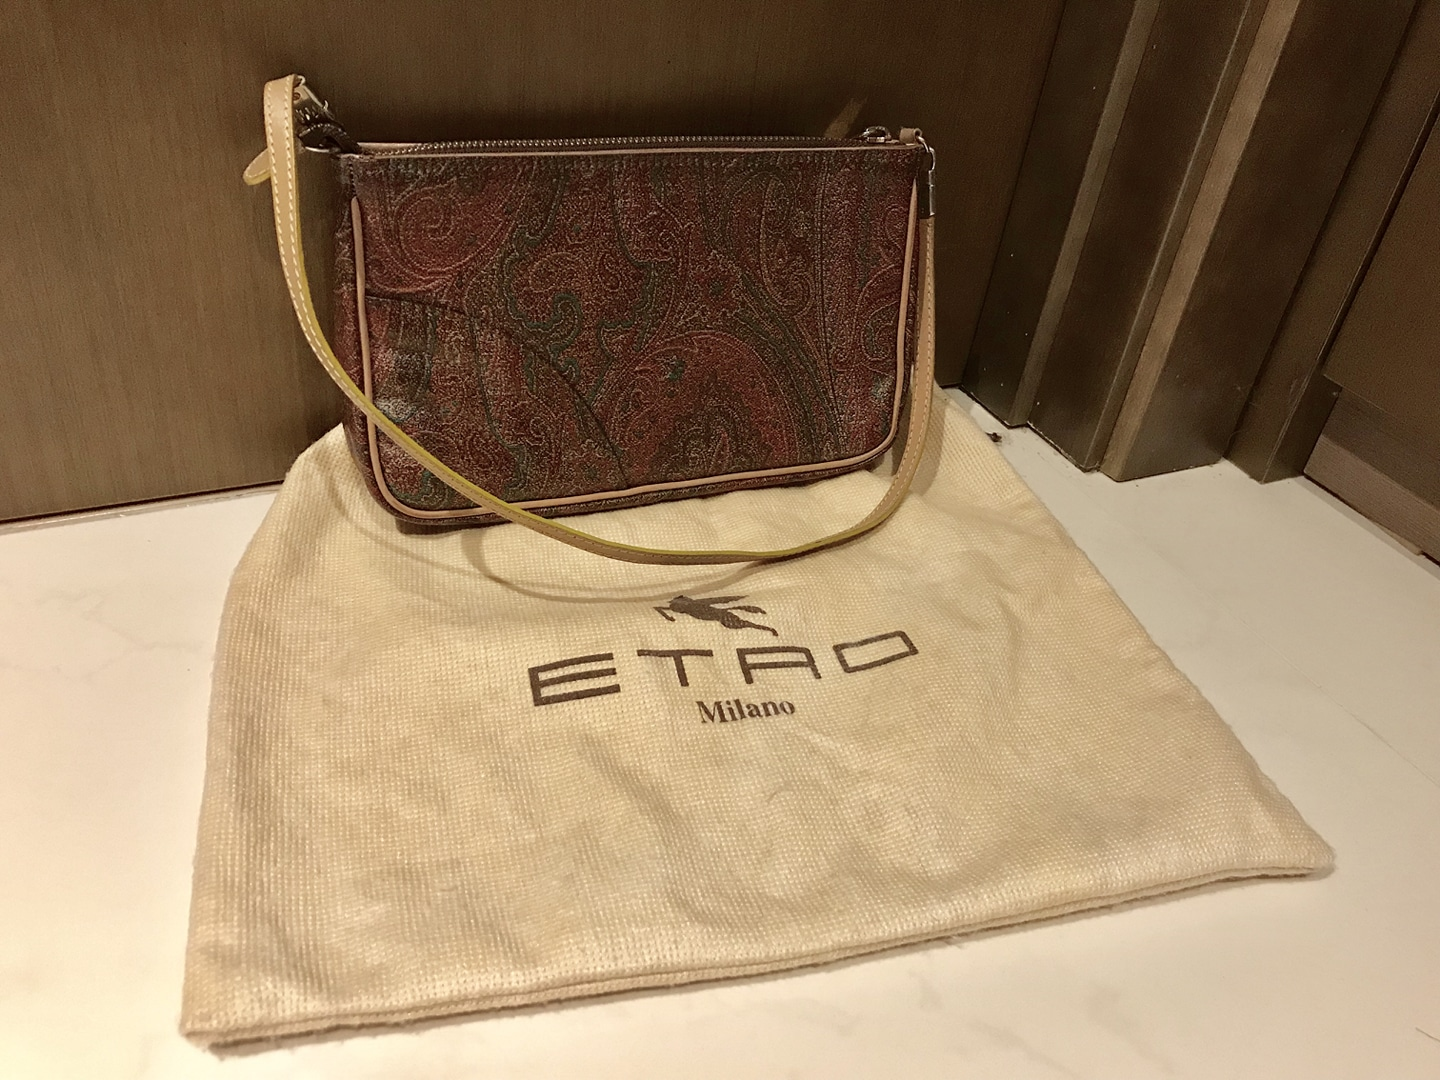 ETRO 에트로 페이즐리 백, made in Italy